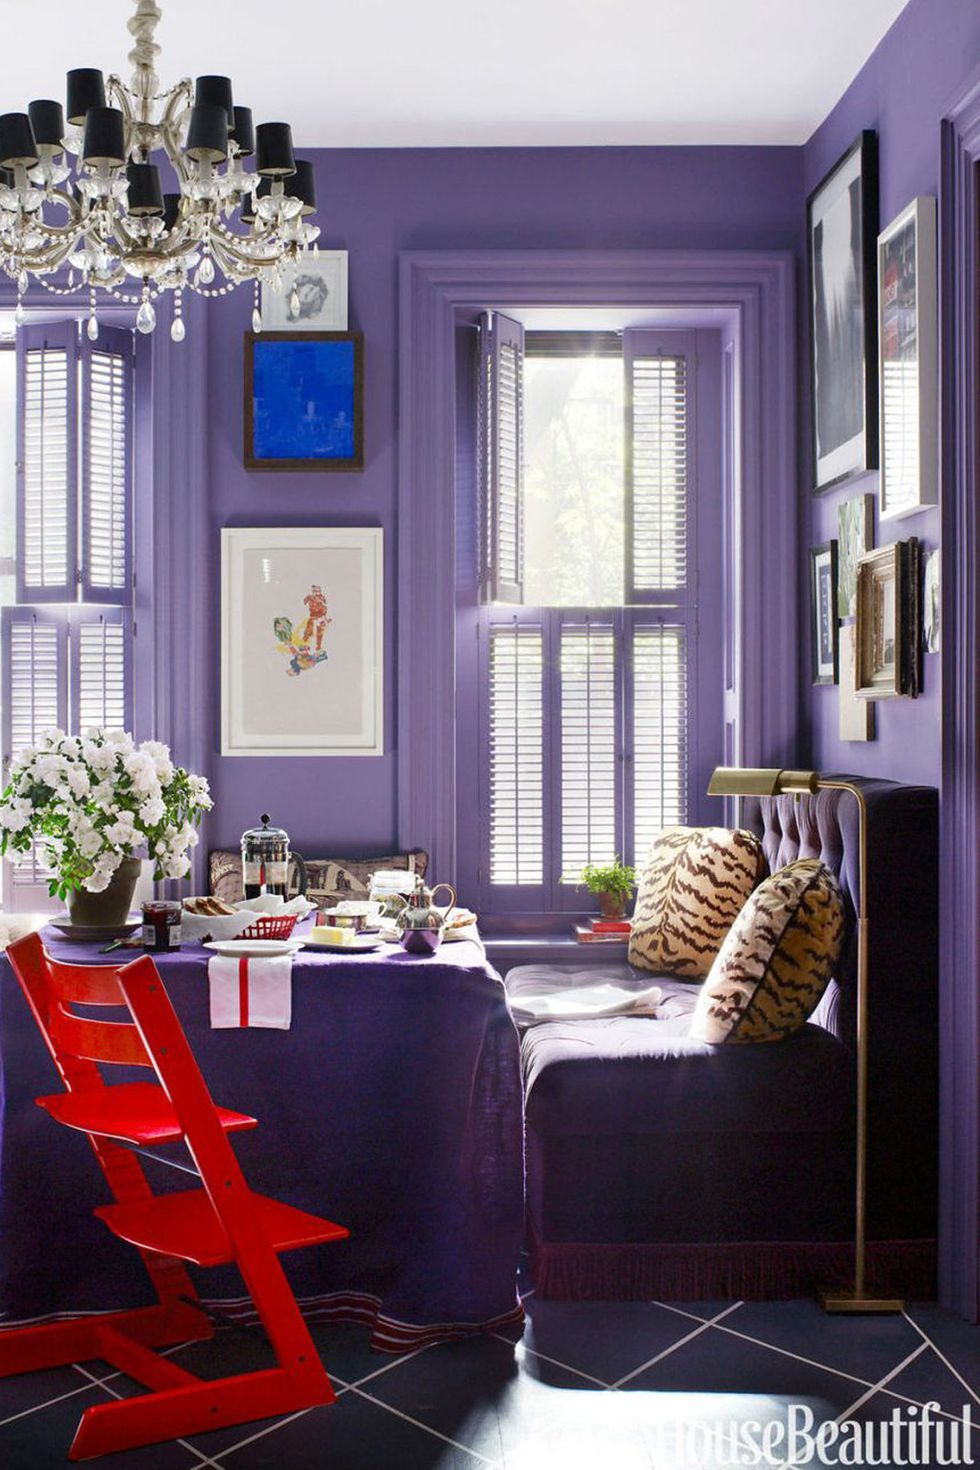 These 25 Color Combinations Are Unexpected—But They